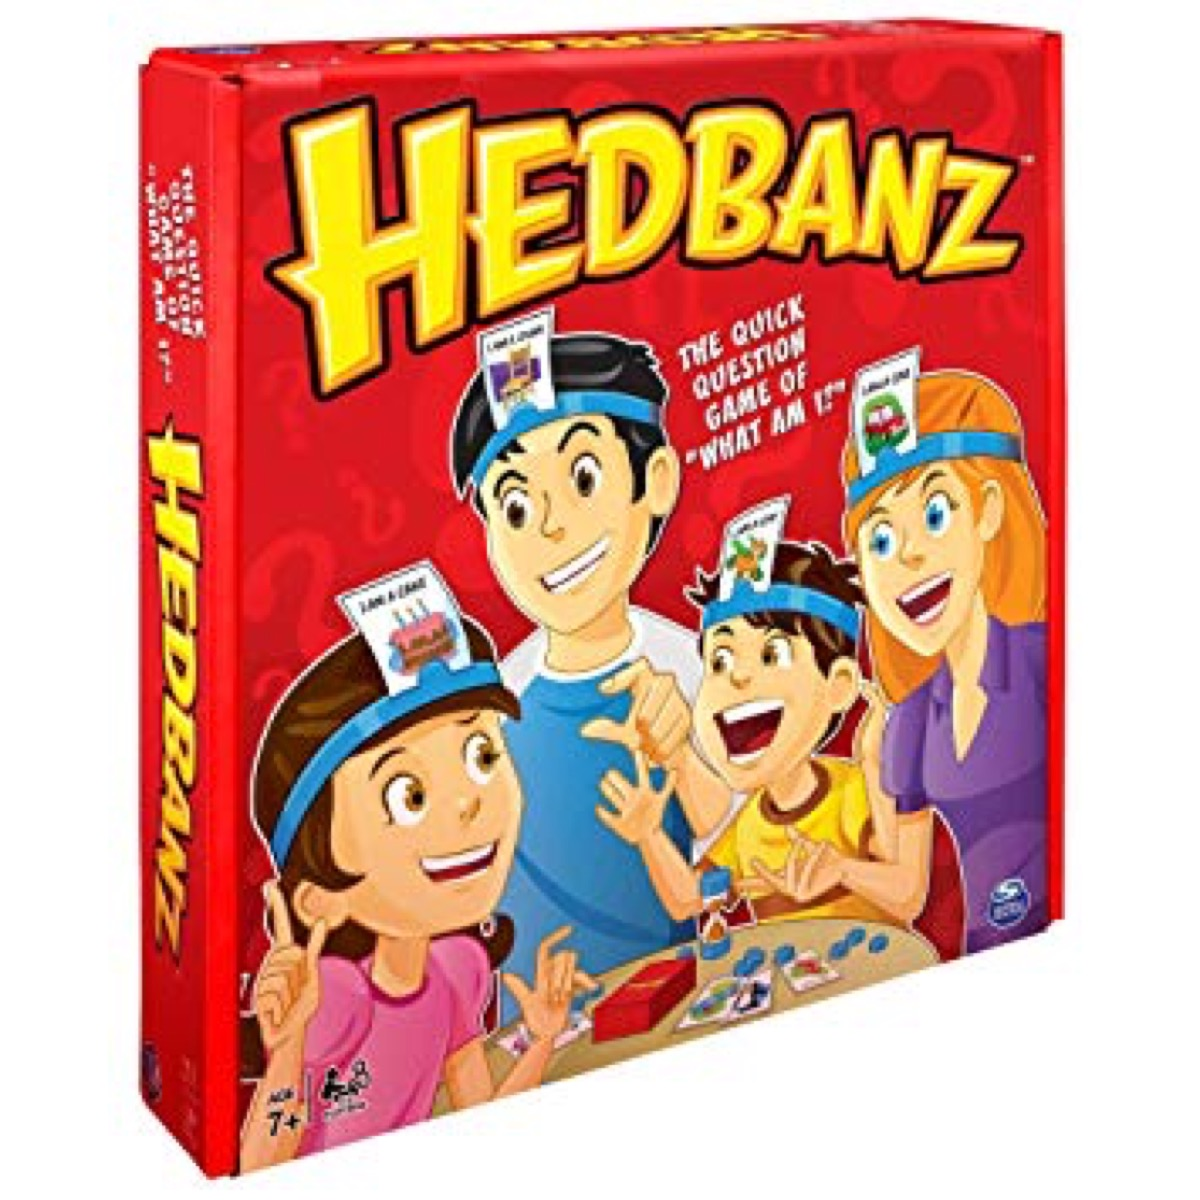 HedBanz Game, Family Guessing Game - Edition may vary from Amazon